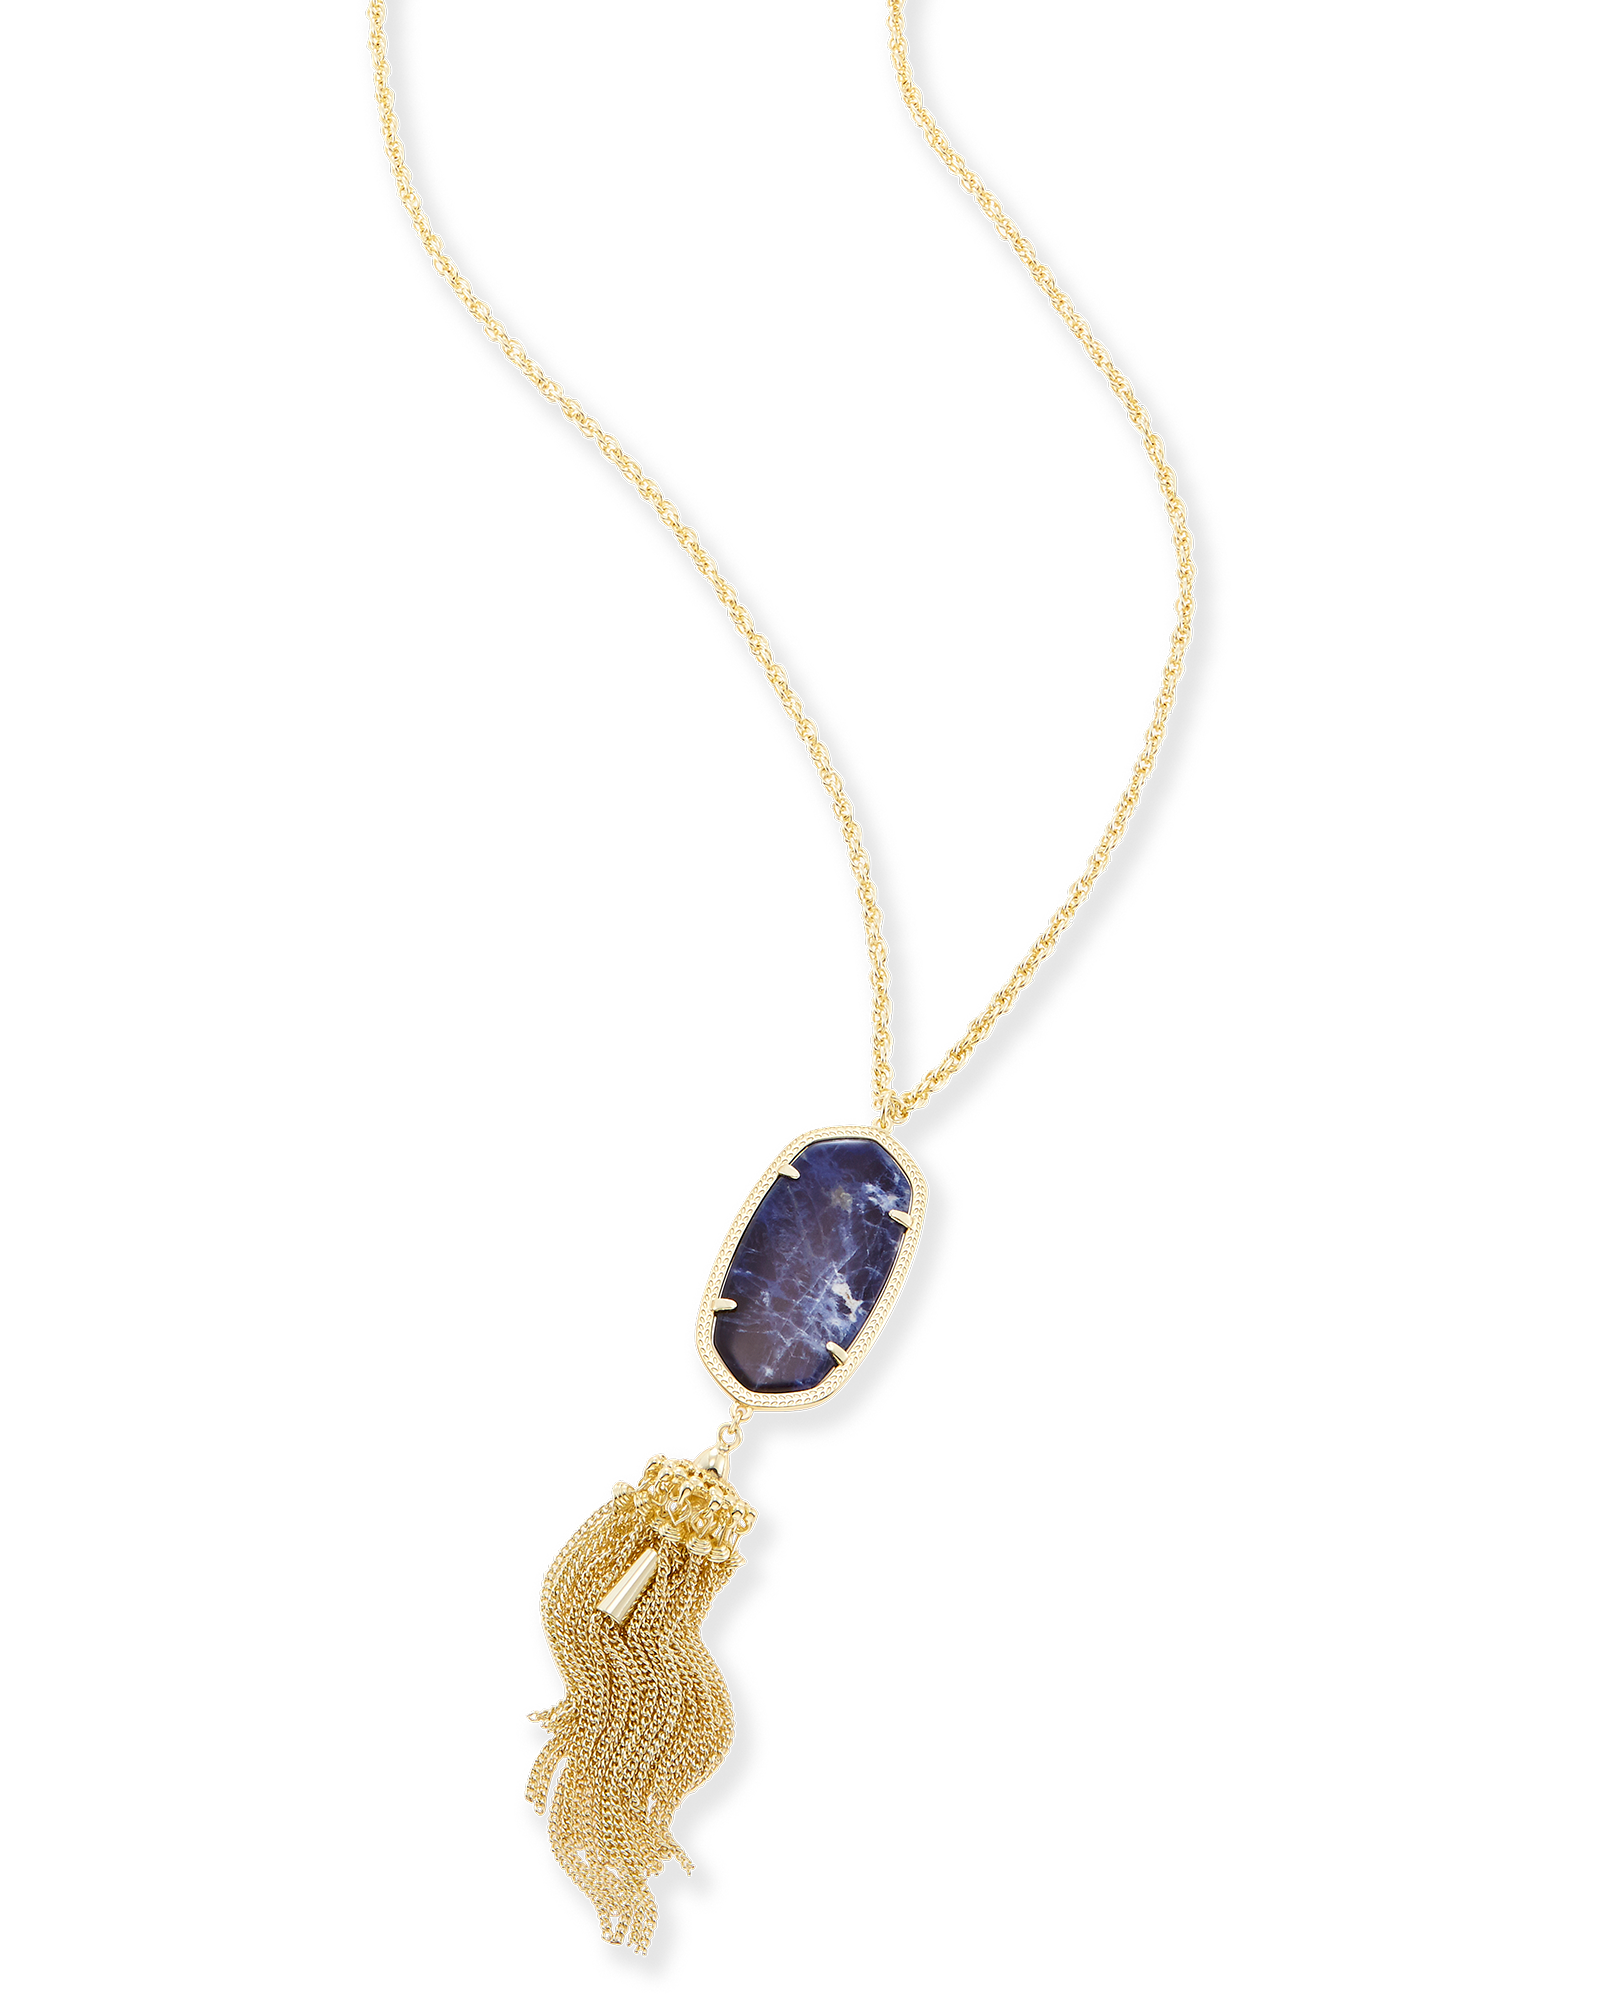 Kendra scott rayne necklace in blue sodalite vici kendra scott rayne necklace in blue sodalite aloadofball Images